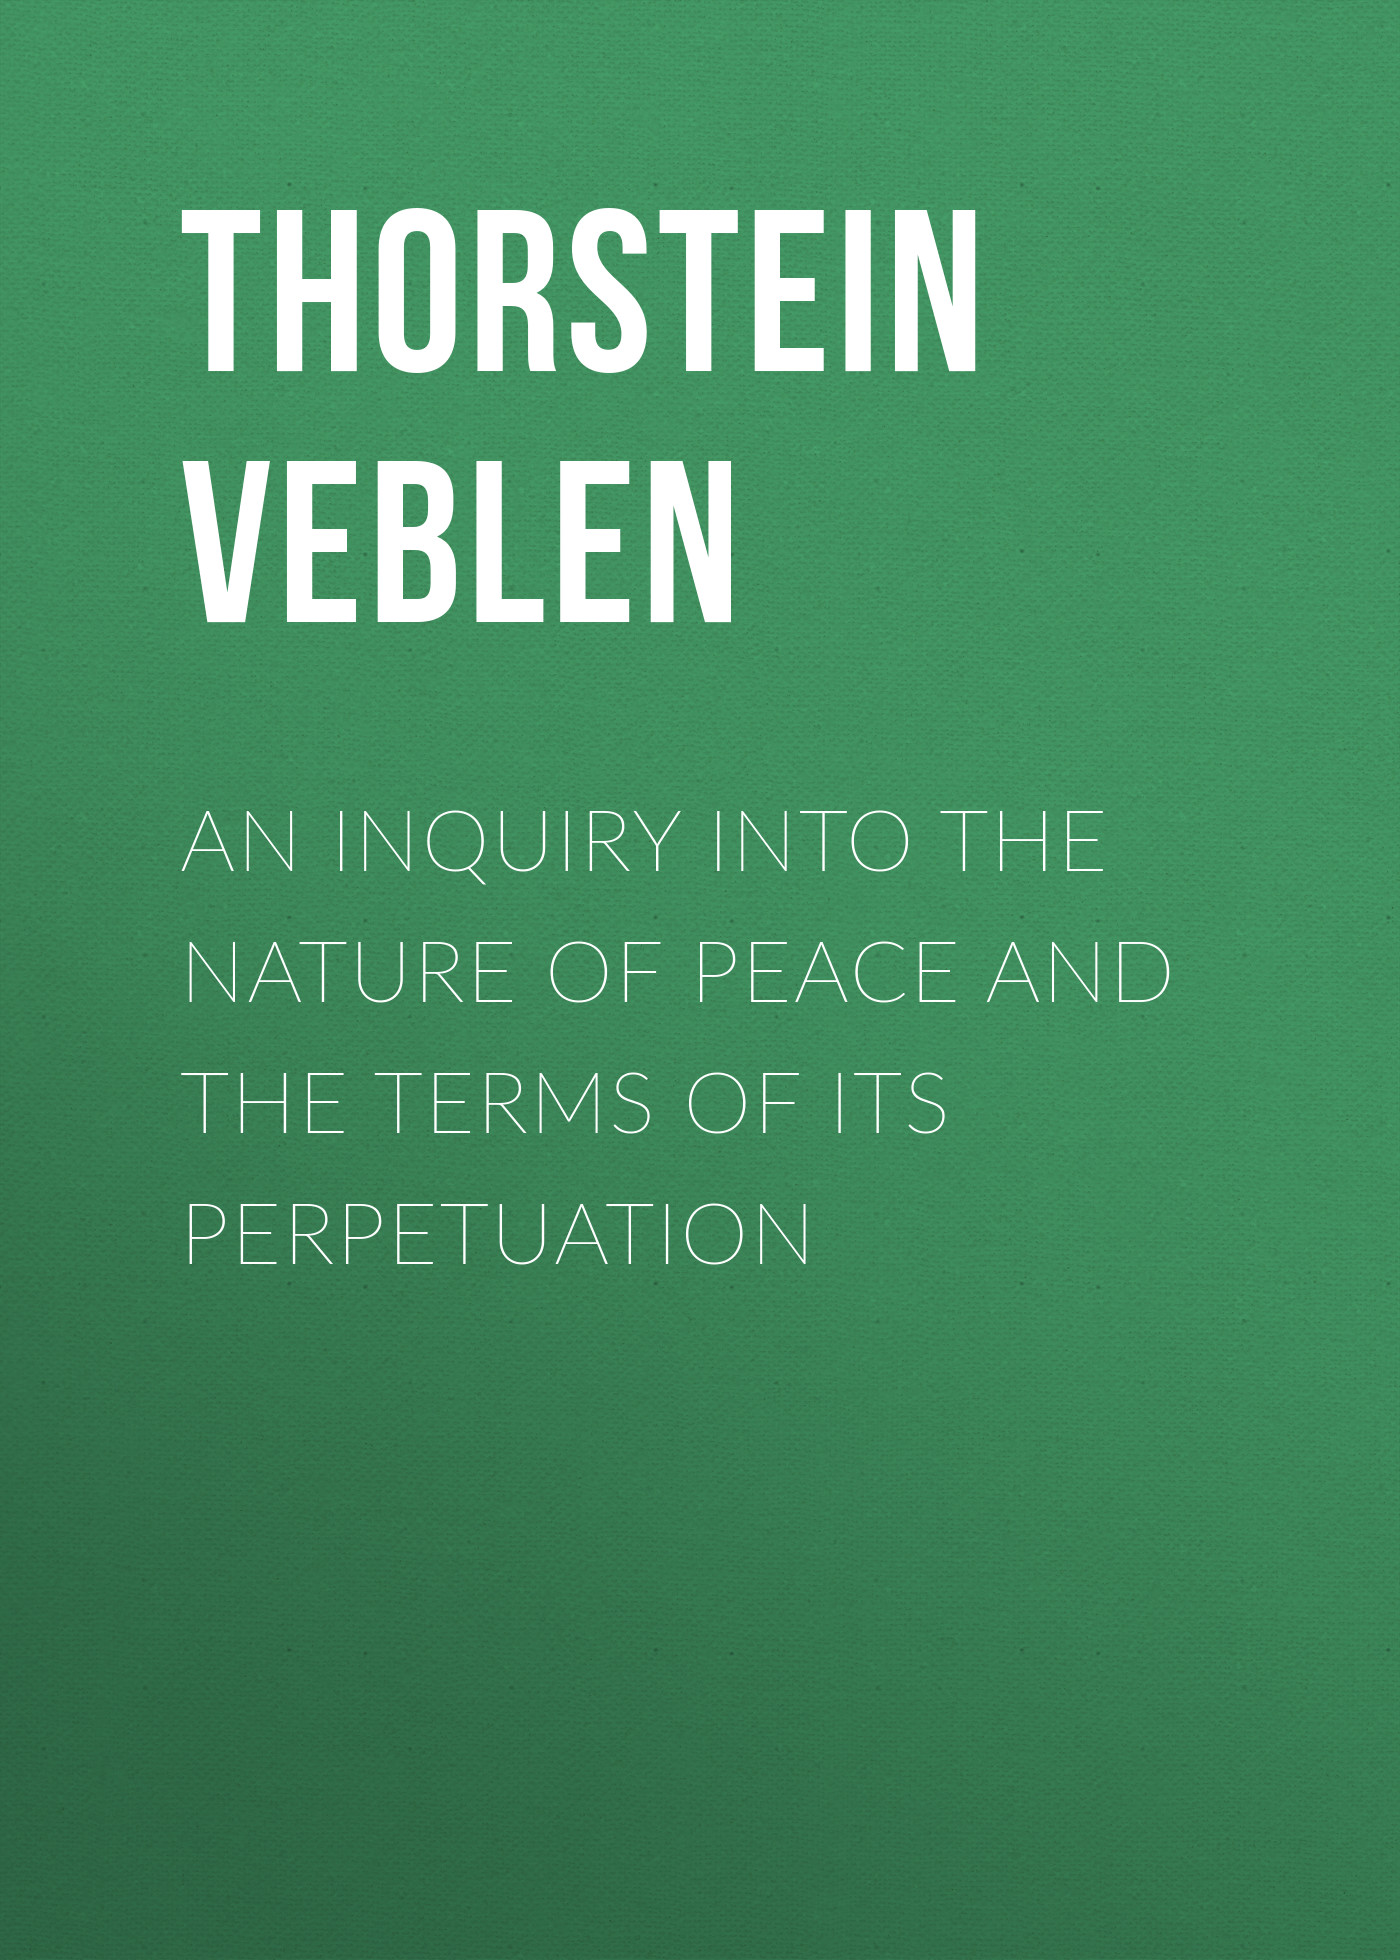 Thorstein Veblen An Inquiry into the Nature of Peace and the Terms of Its Perpetuation james maitland lauderdale an inquiry into the nature and origin of public wealth